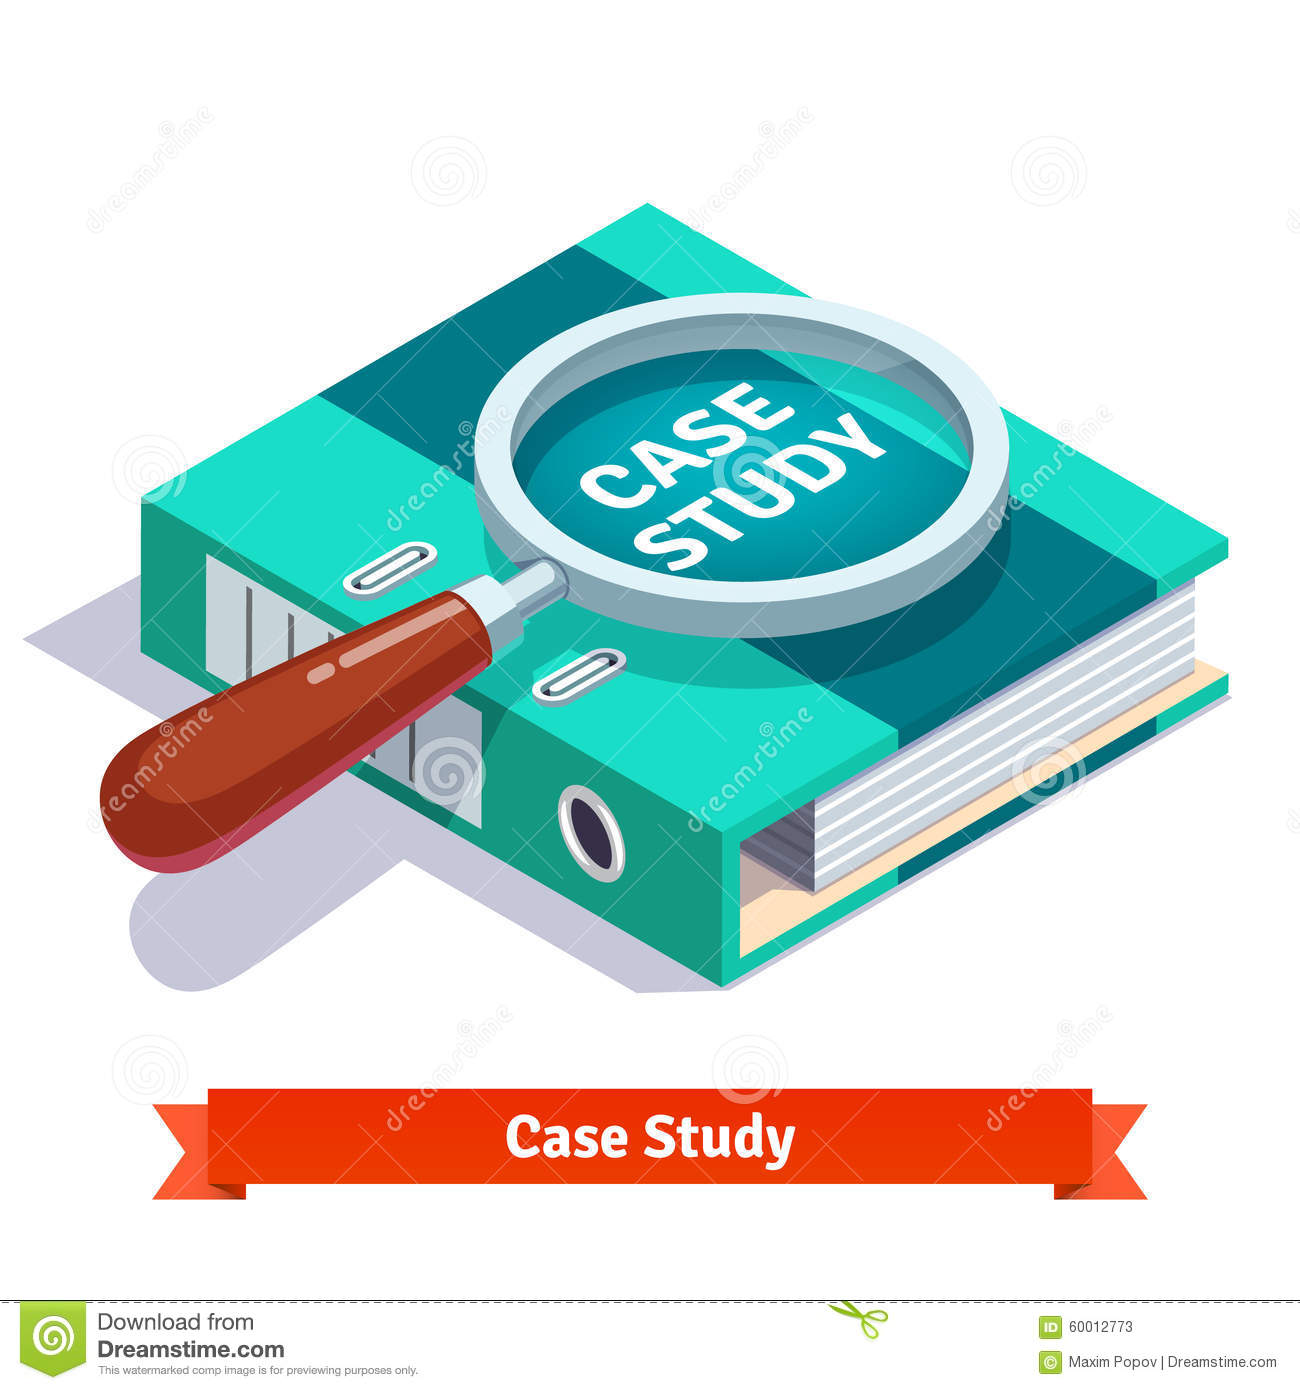 case study research design and methods pdf free download